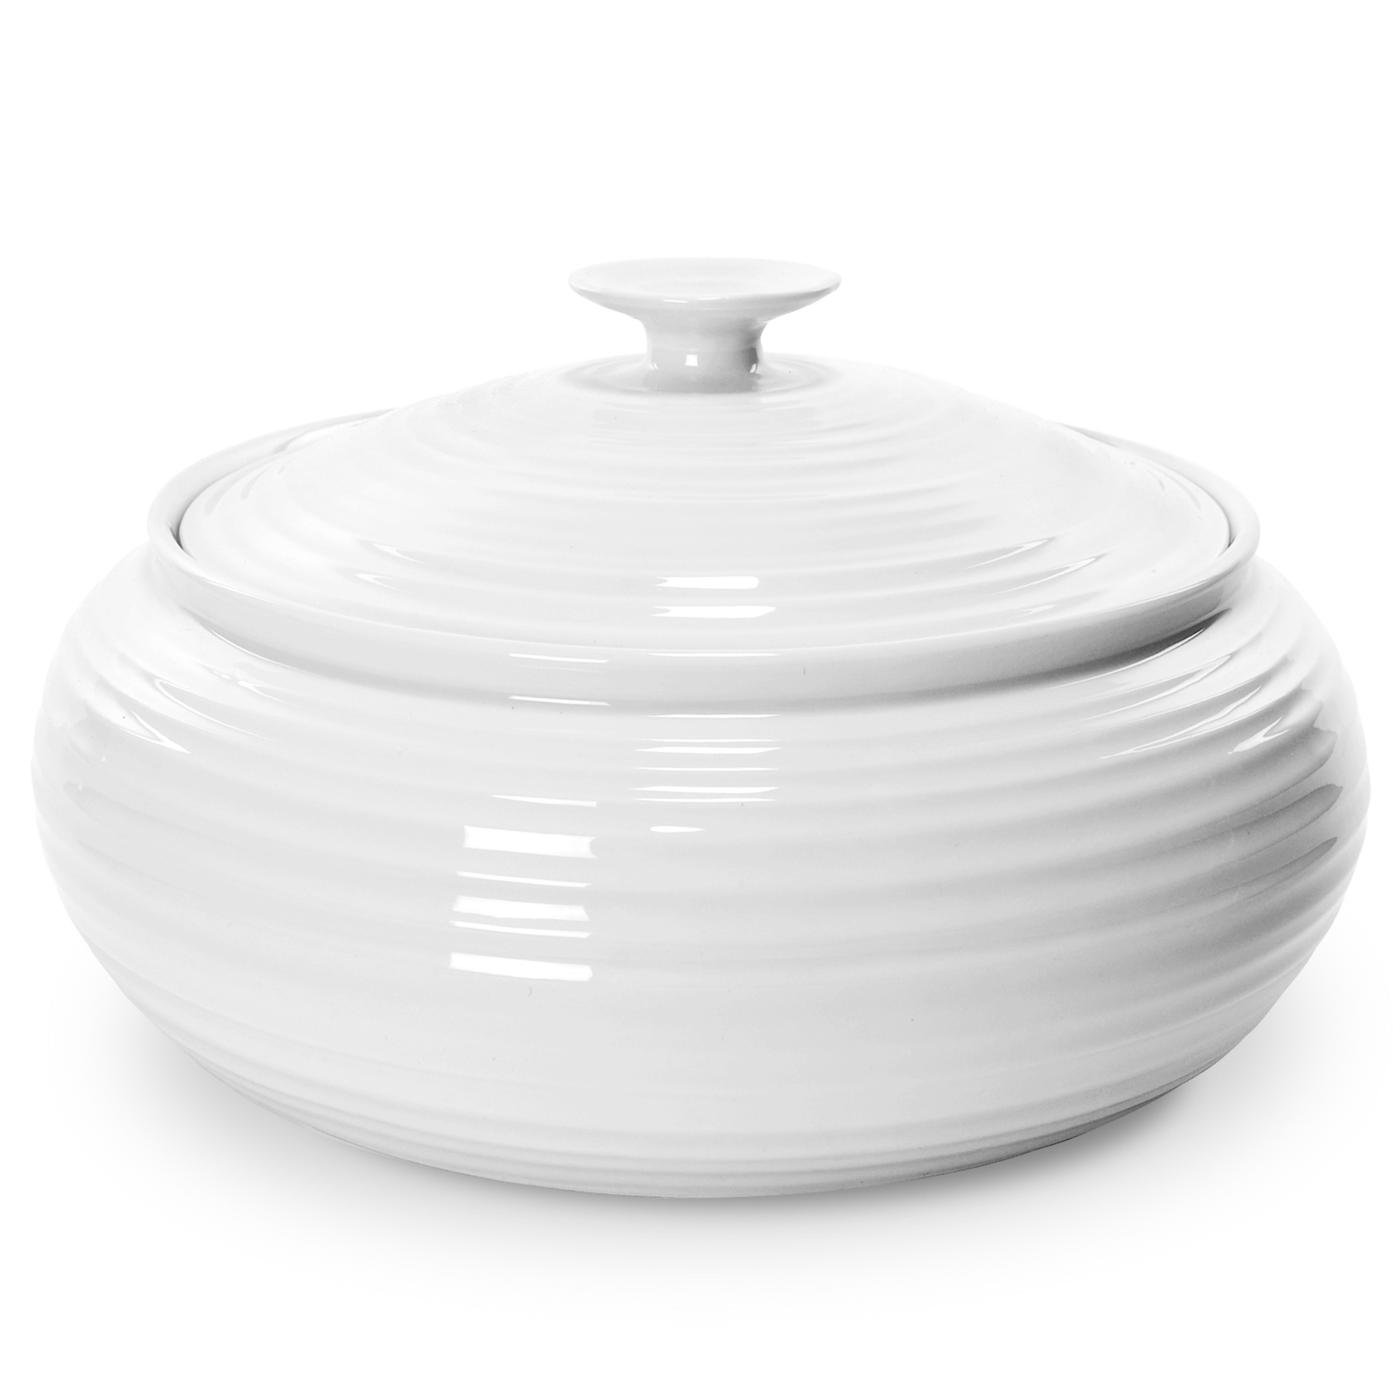 Portmeirion Sophie Conran White Low Covered Casserole 422308